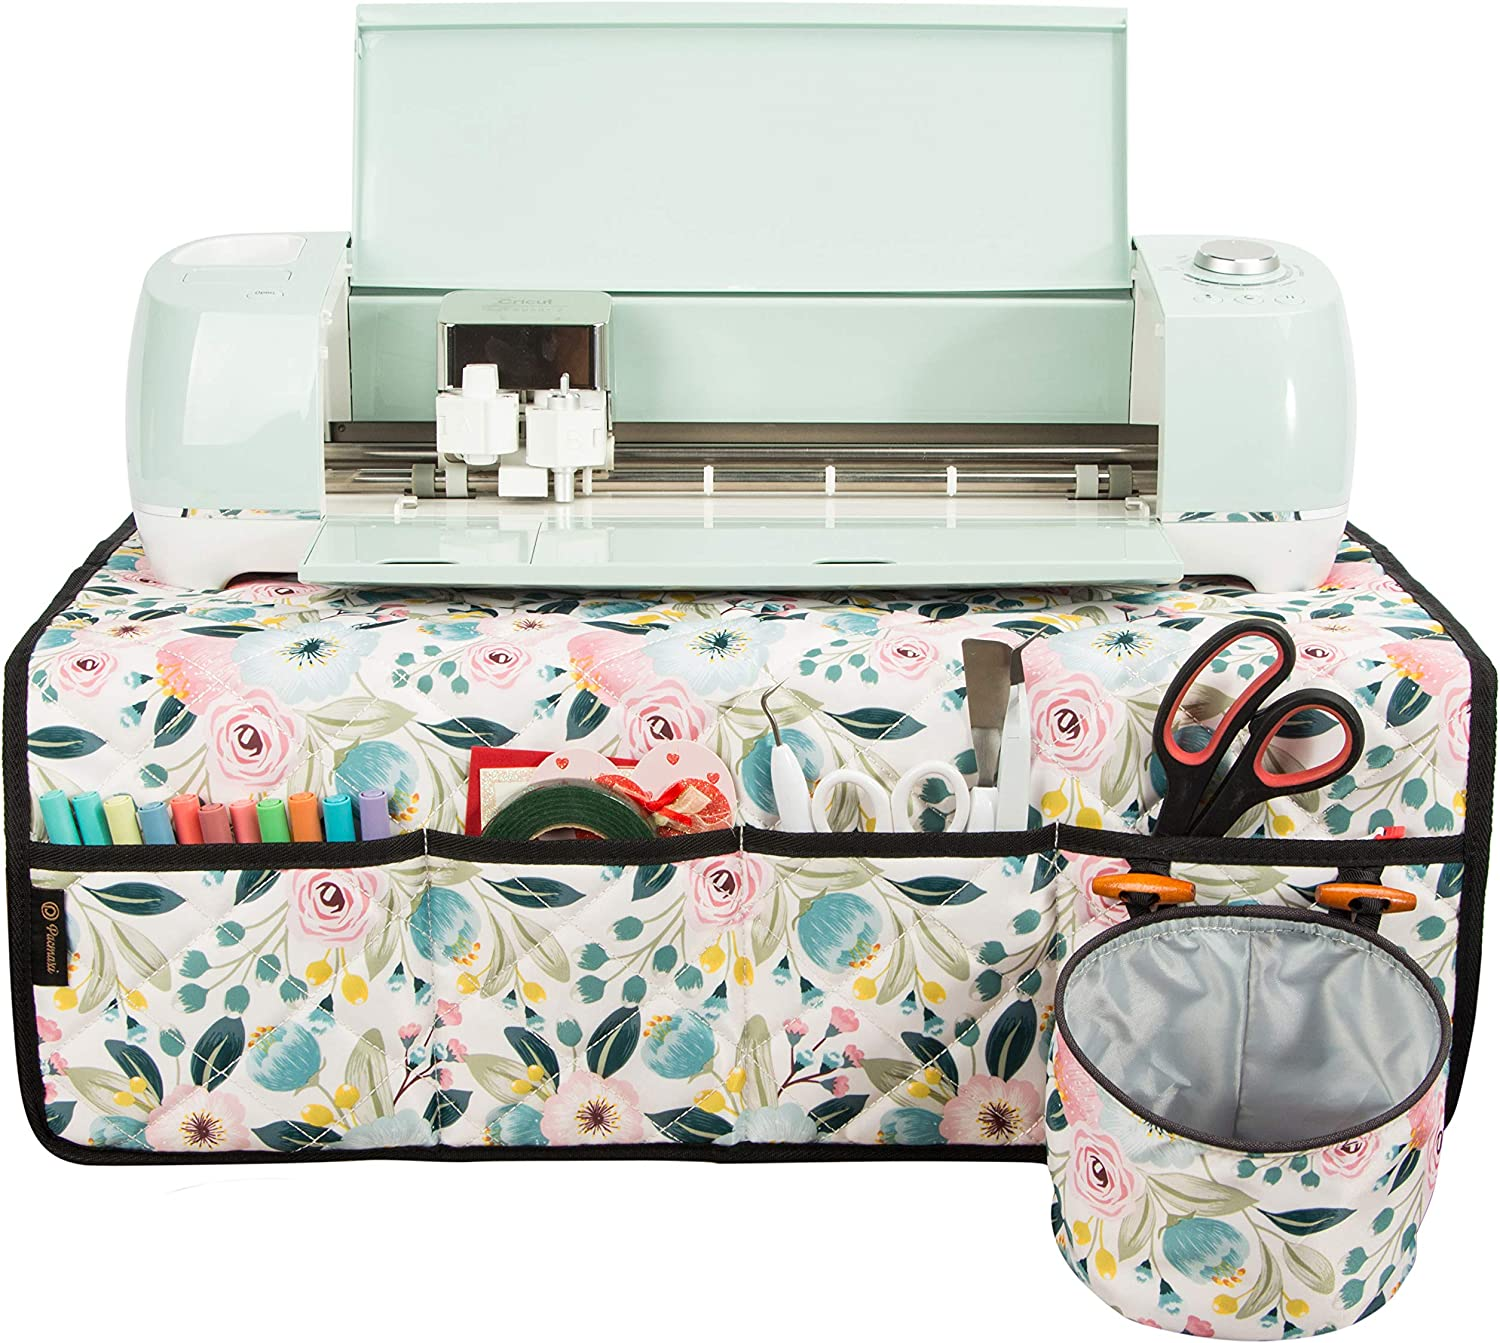 PACMAXI Machine Louisville-Jefferson County Mall Pad Large-scale sale for Cricut Table with Maker Pockets